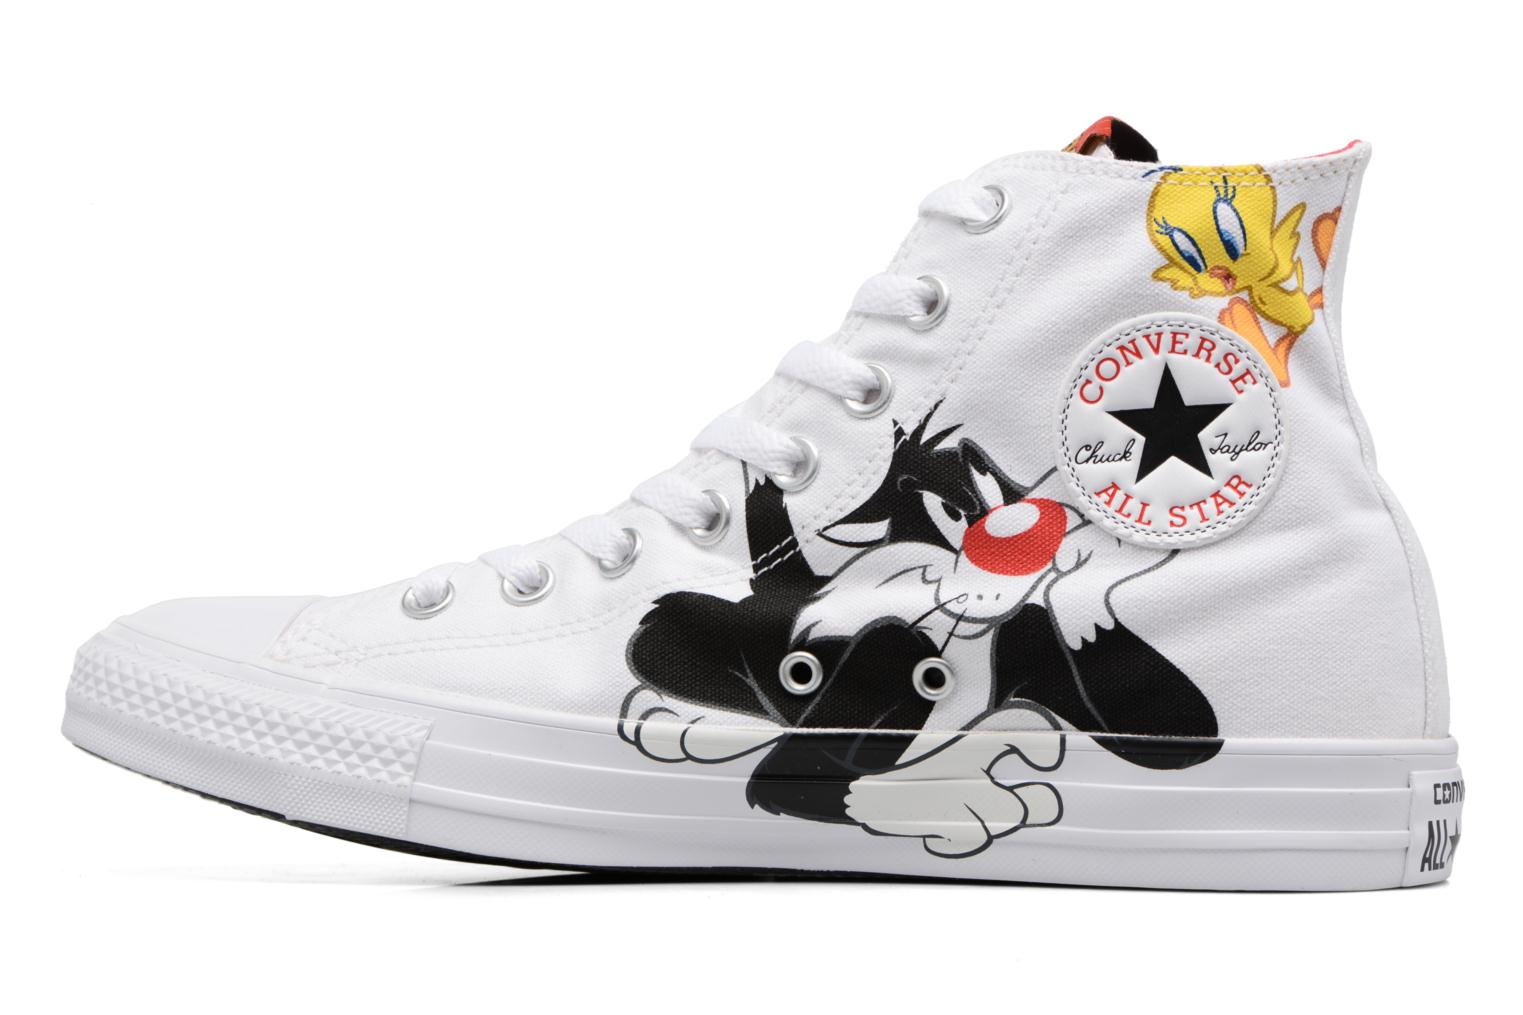 Chuck Taylor All Star Looney Tunes Hi White/Black/Tweety Yellow